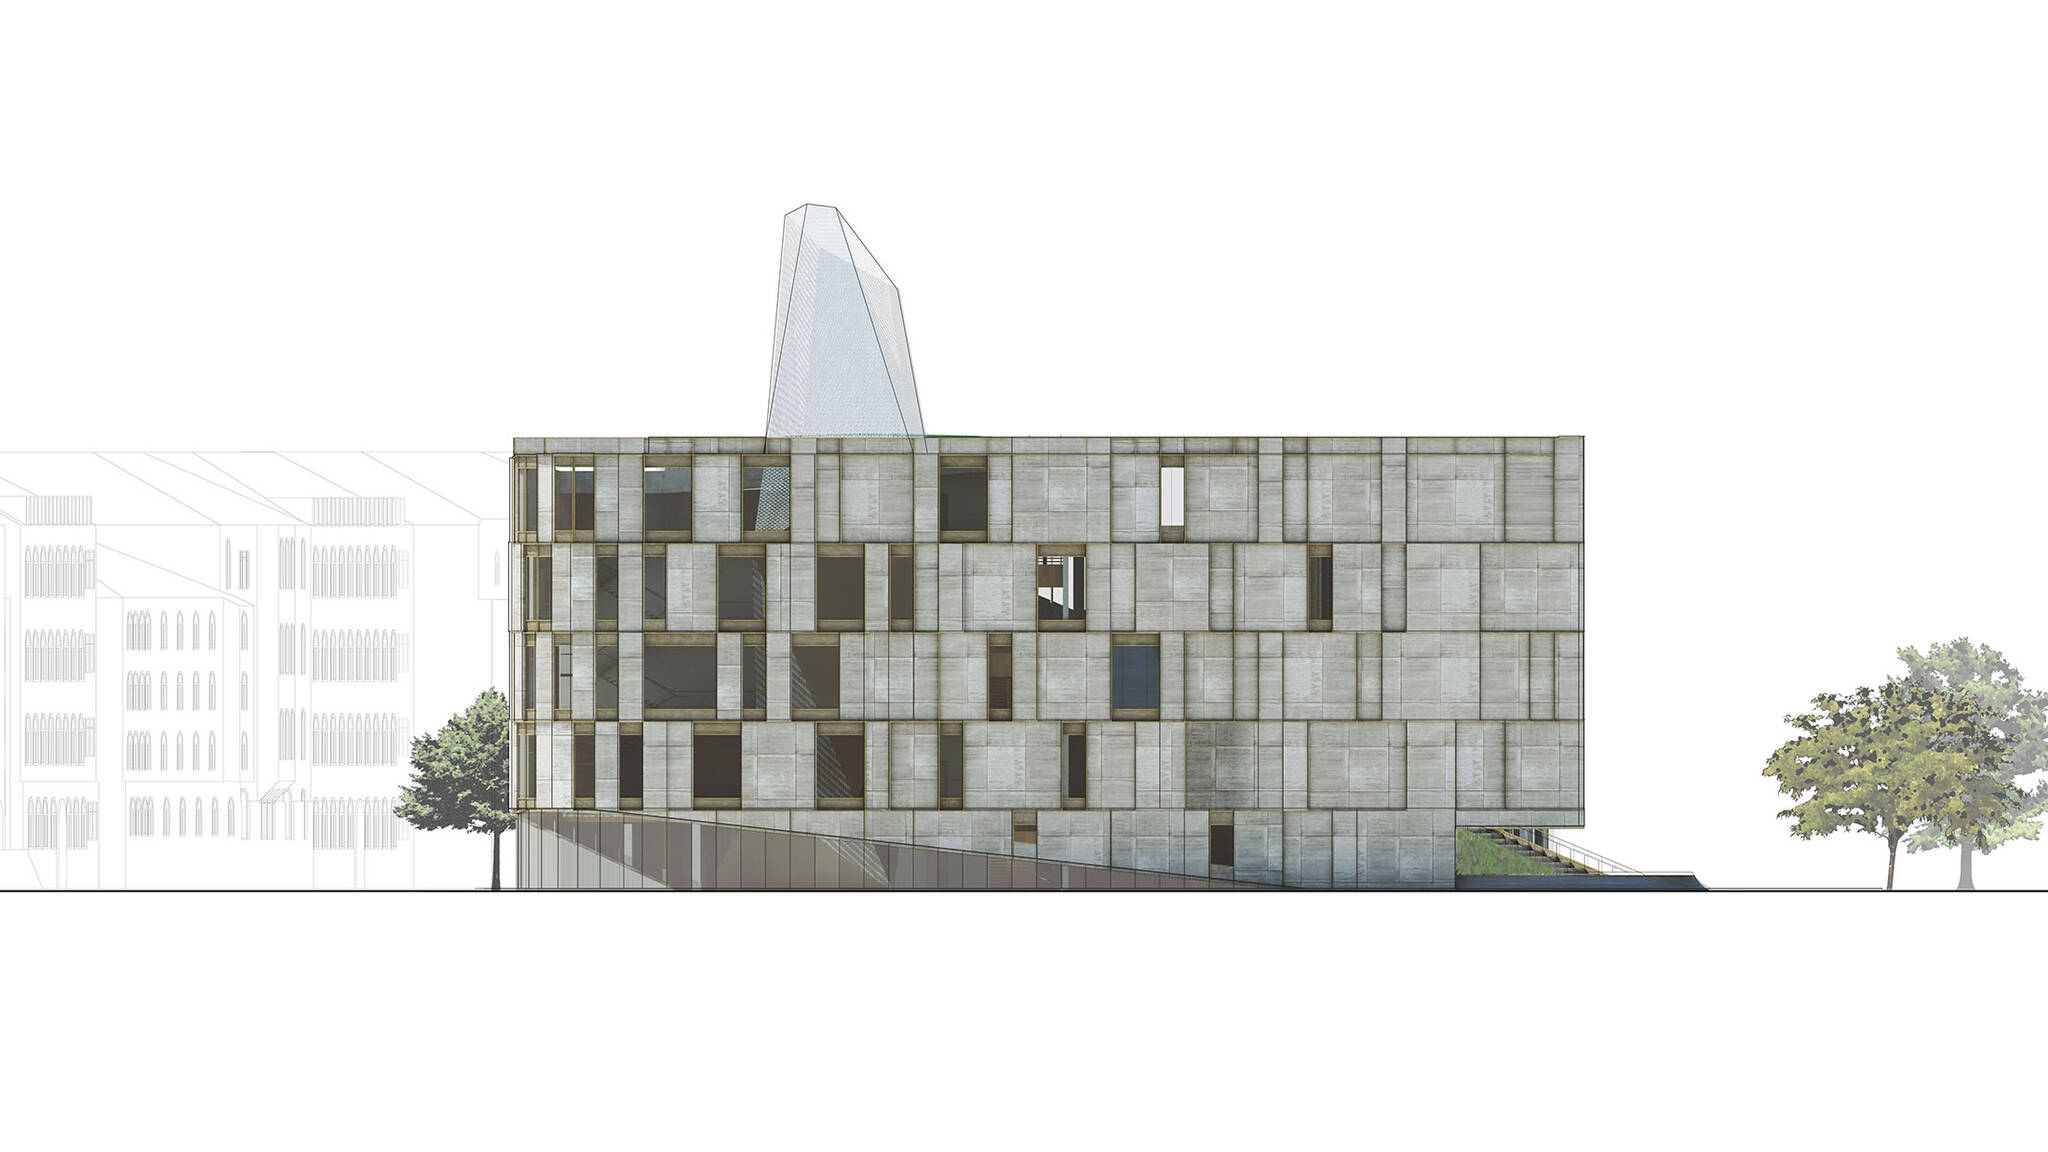 Right elevation of the Museum of Etnography project located in Budapest, Hungary designed by the architecture studio Danny Forster & Architecture